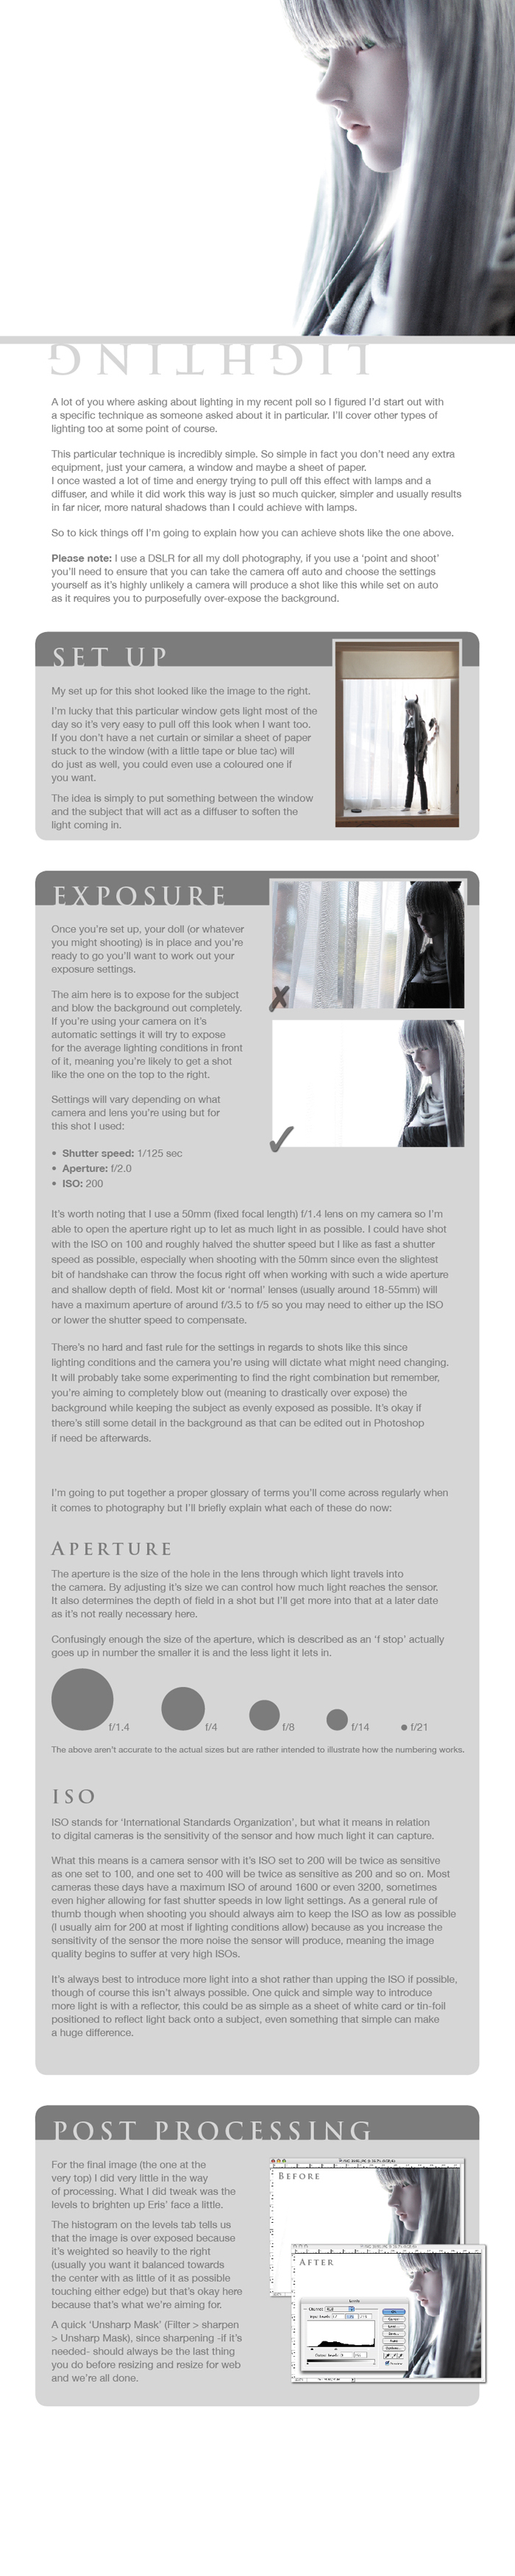 BJD Photography Tutorial I by Geekisthecolour